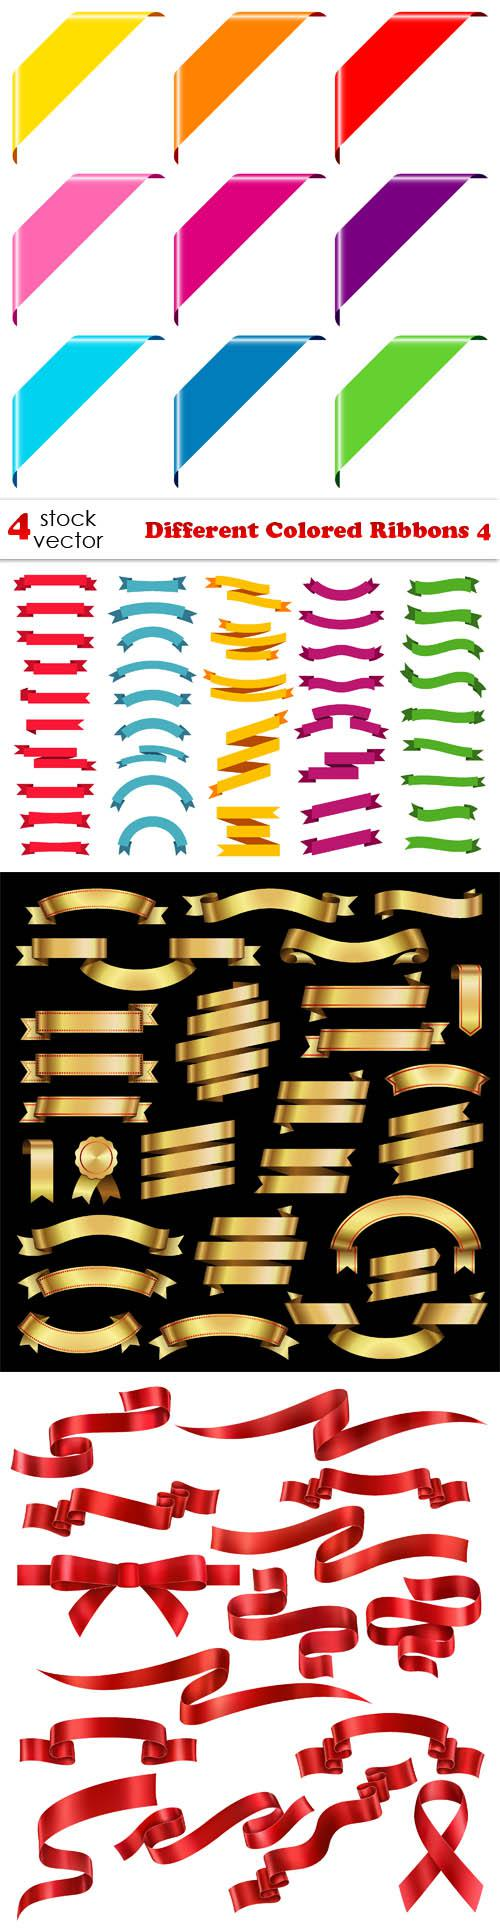 Different Colored Ribbons 4